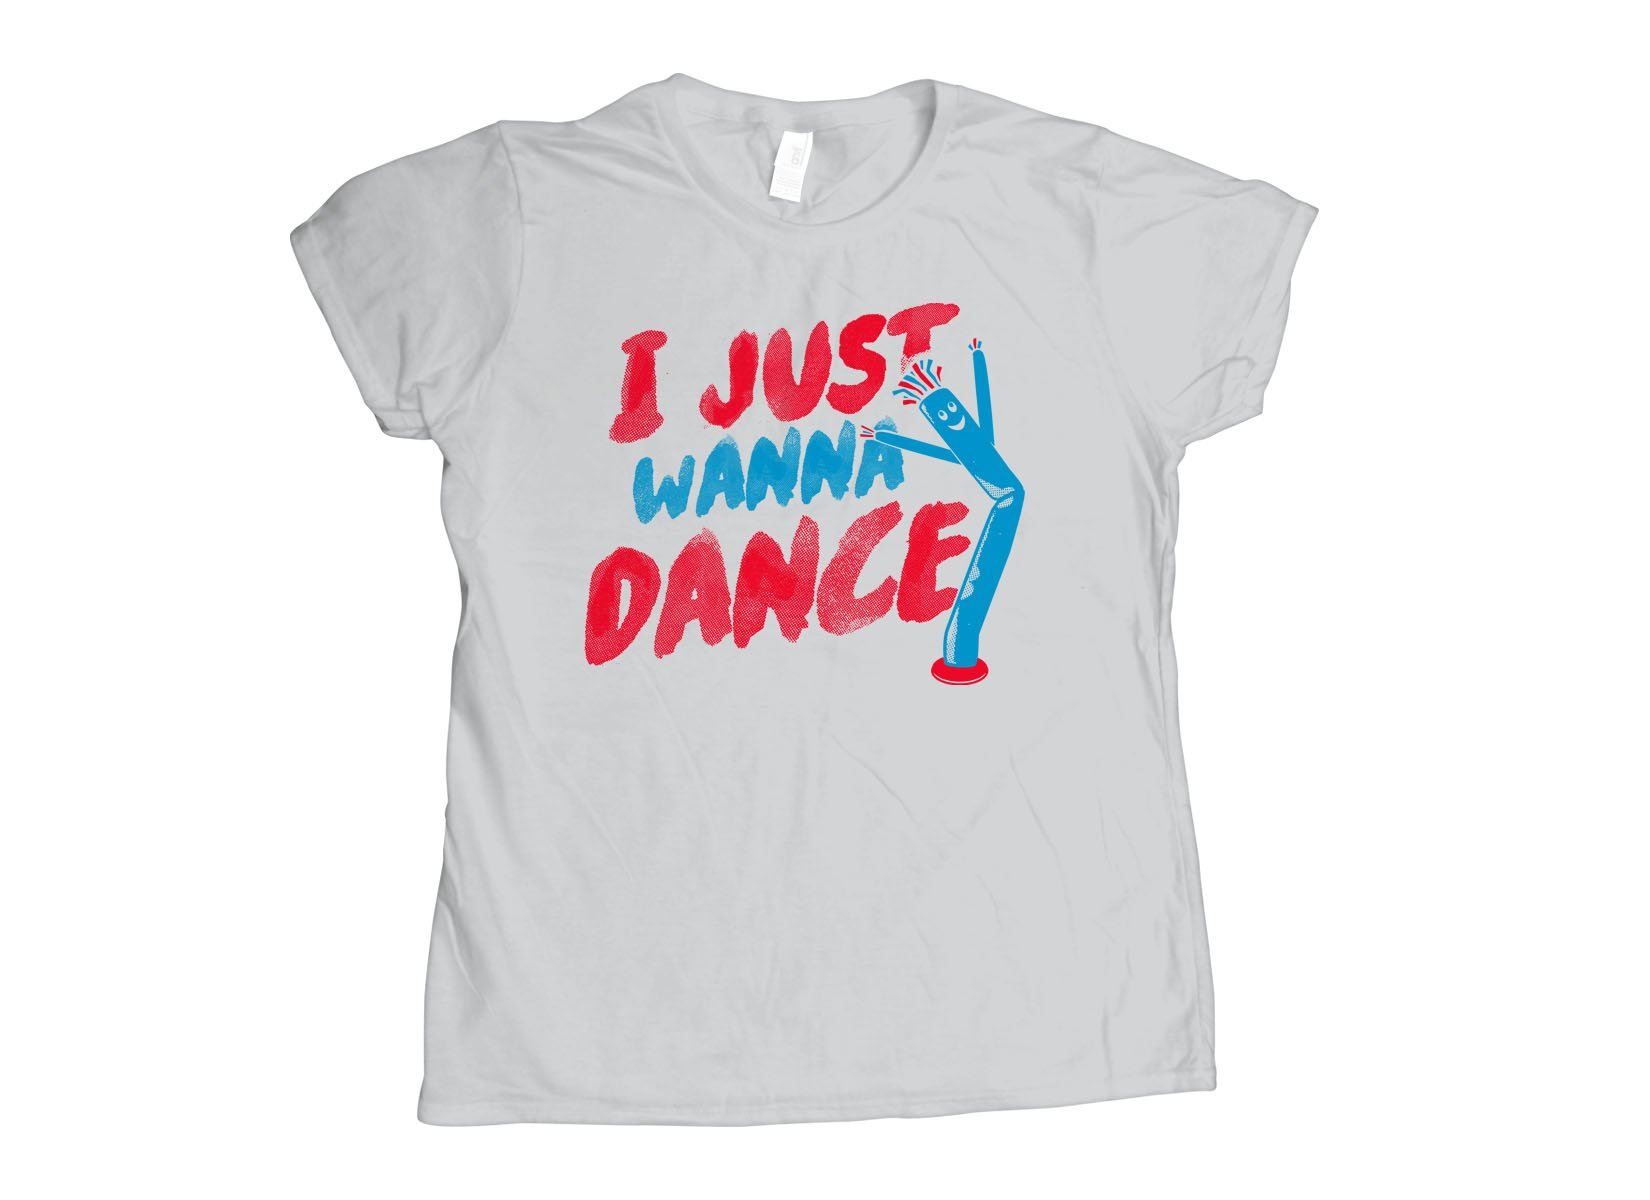 I Just Wanna Dance on Womens T-Shirt